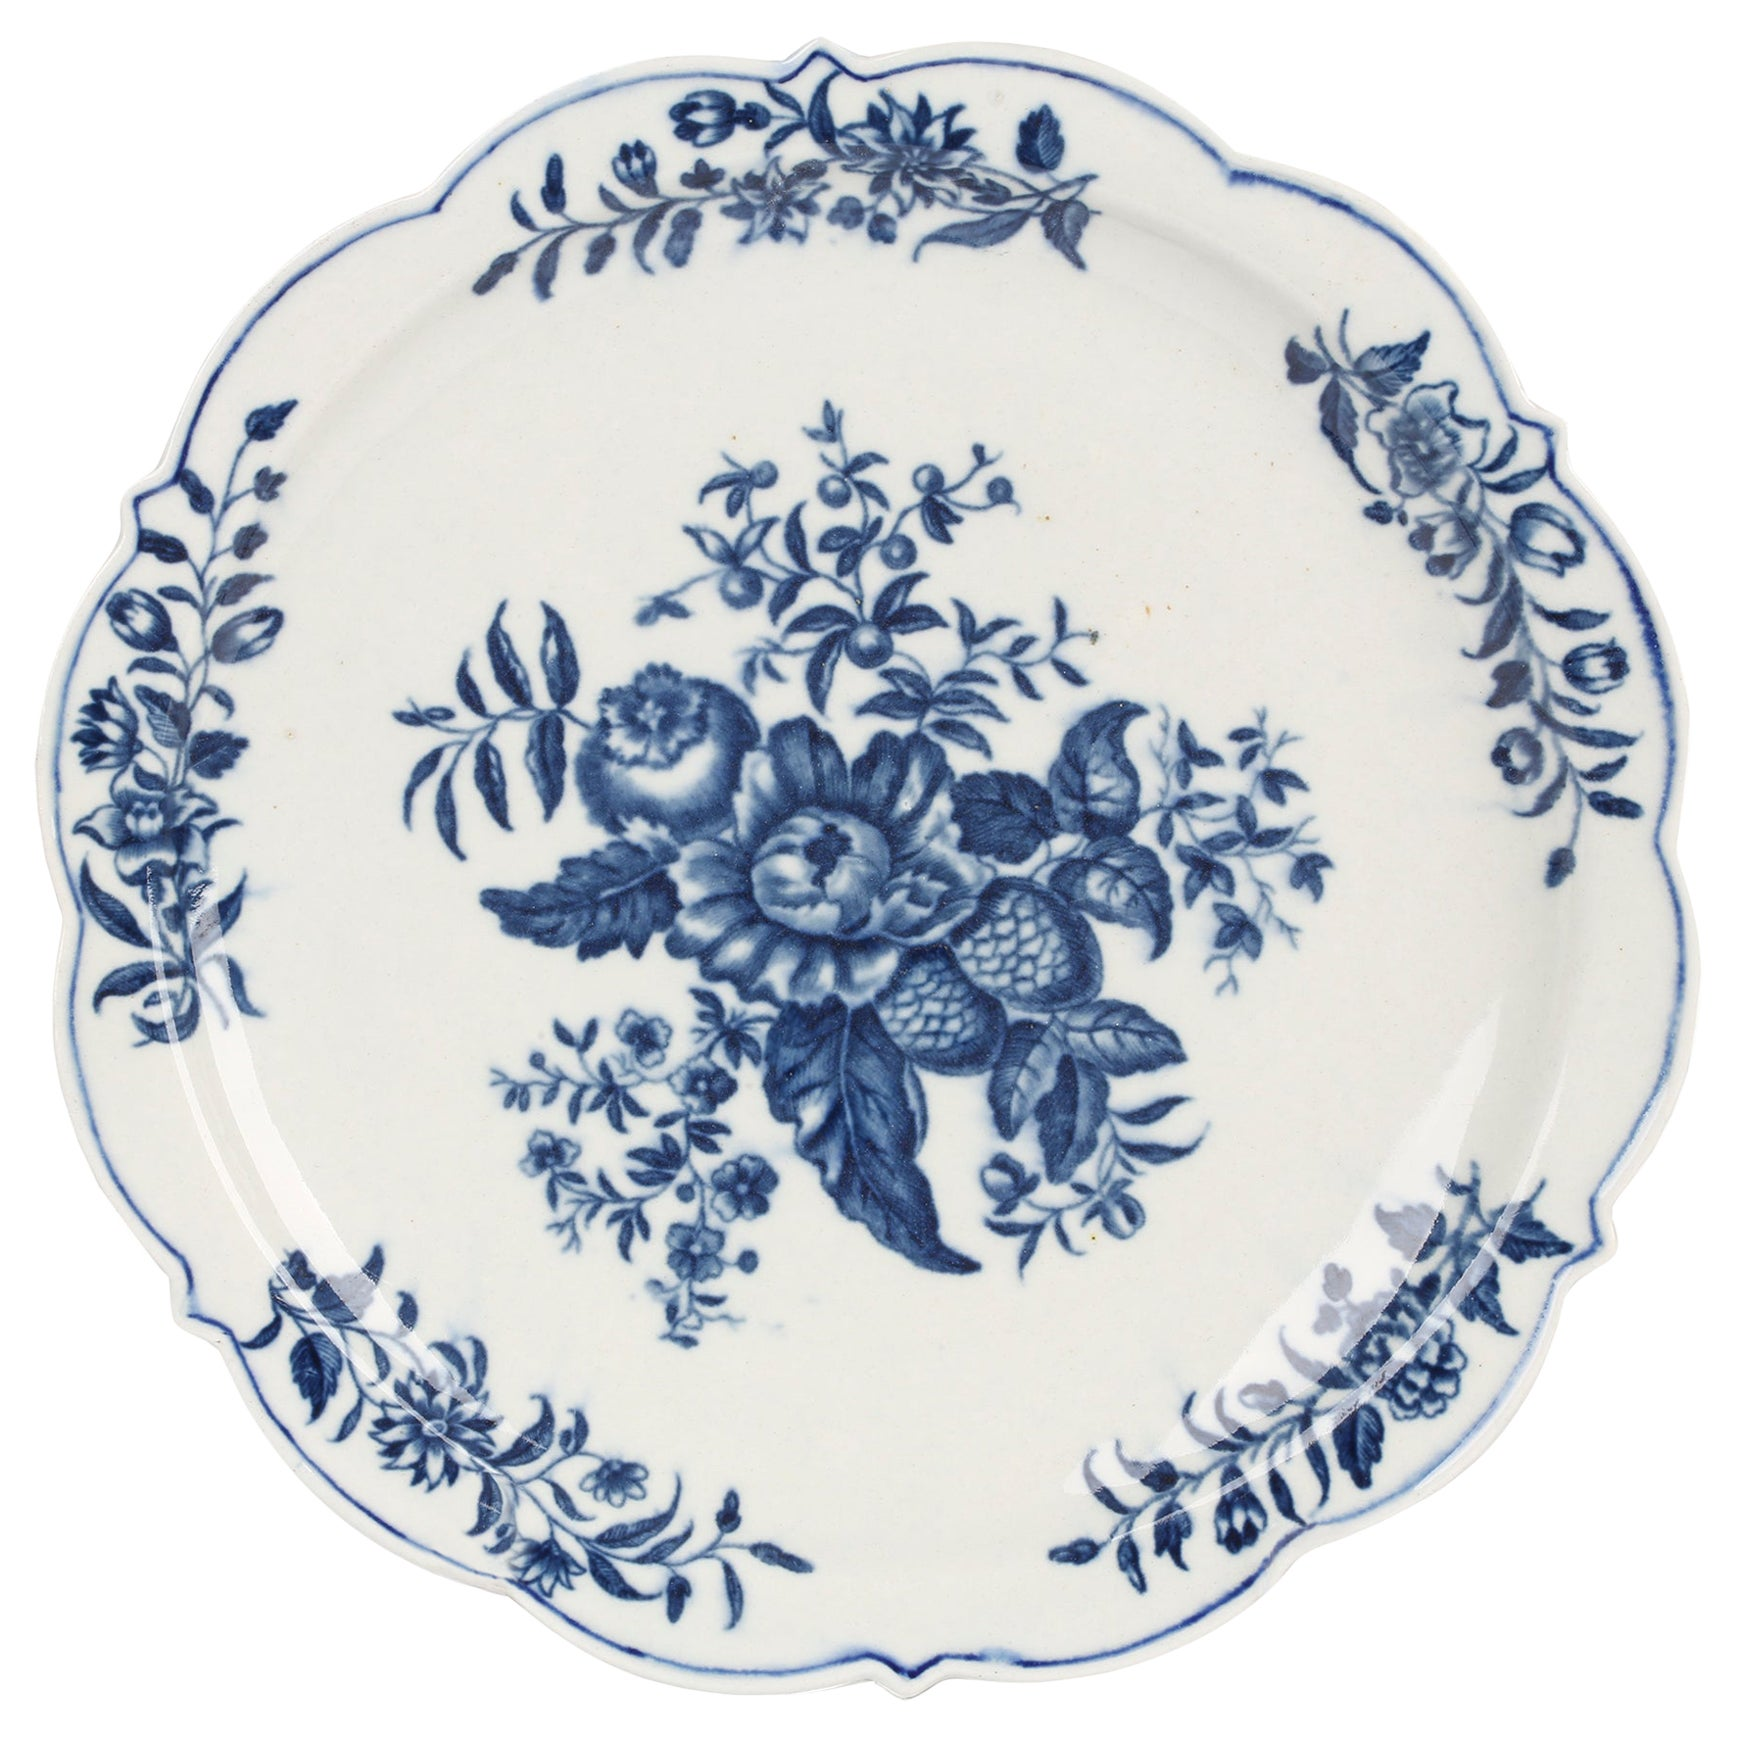 Worcester Early Dr Wall Period Pine Cone Porcelain Plate, circa 1760